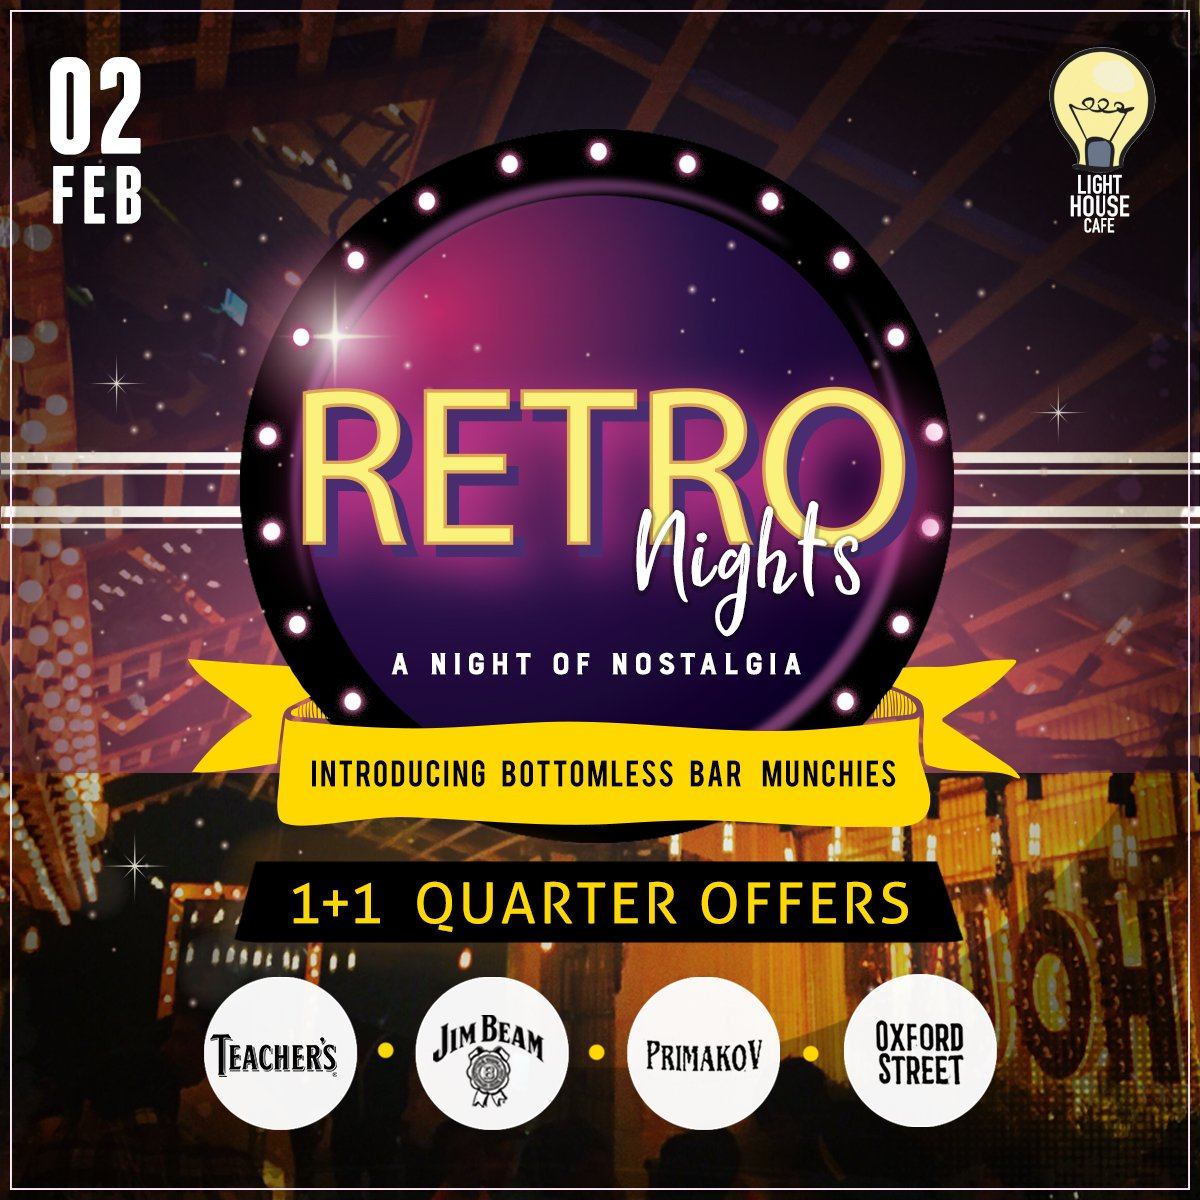 Time to feel a little nostalgic & a little happy with our Retro Night Offers only at Light House Cafe Mumbai  #LHC #Worli #Mumbai #Zomato #Blogpost #bloggers #Weekday #CurlyTales #Weekends #Thingstodo #Mumbaifoodie #Foodgasm #mumbaifood #indianblogger #dailyfoodfeed #blogspot